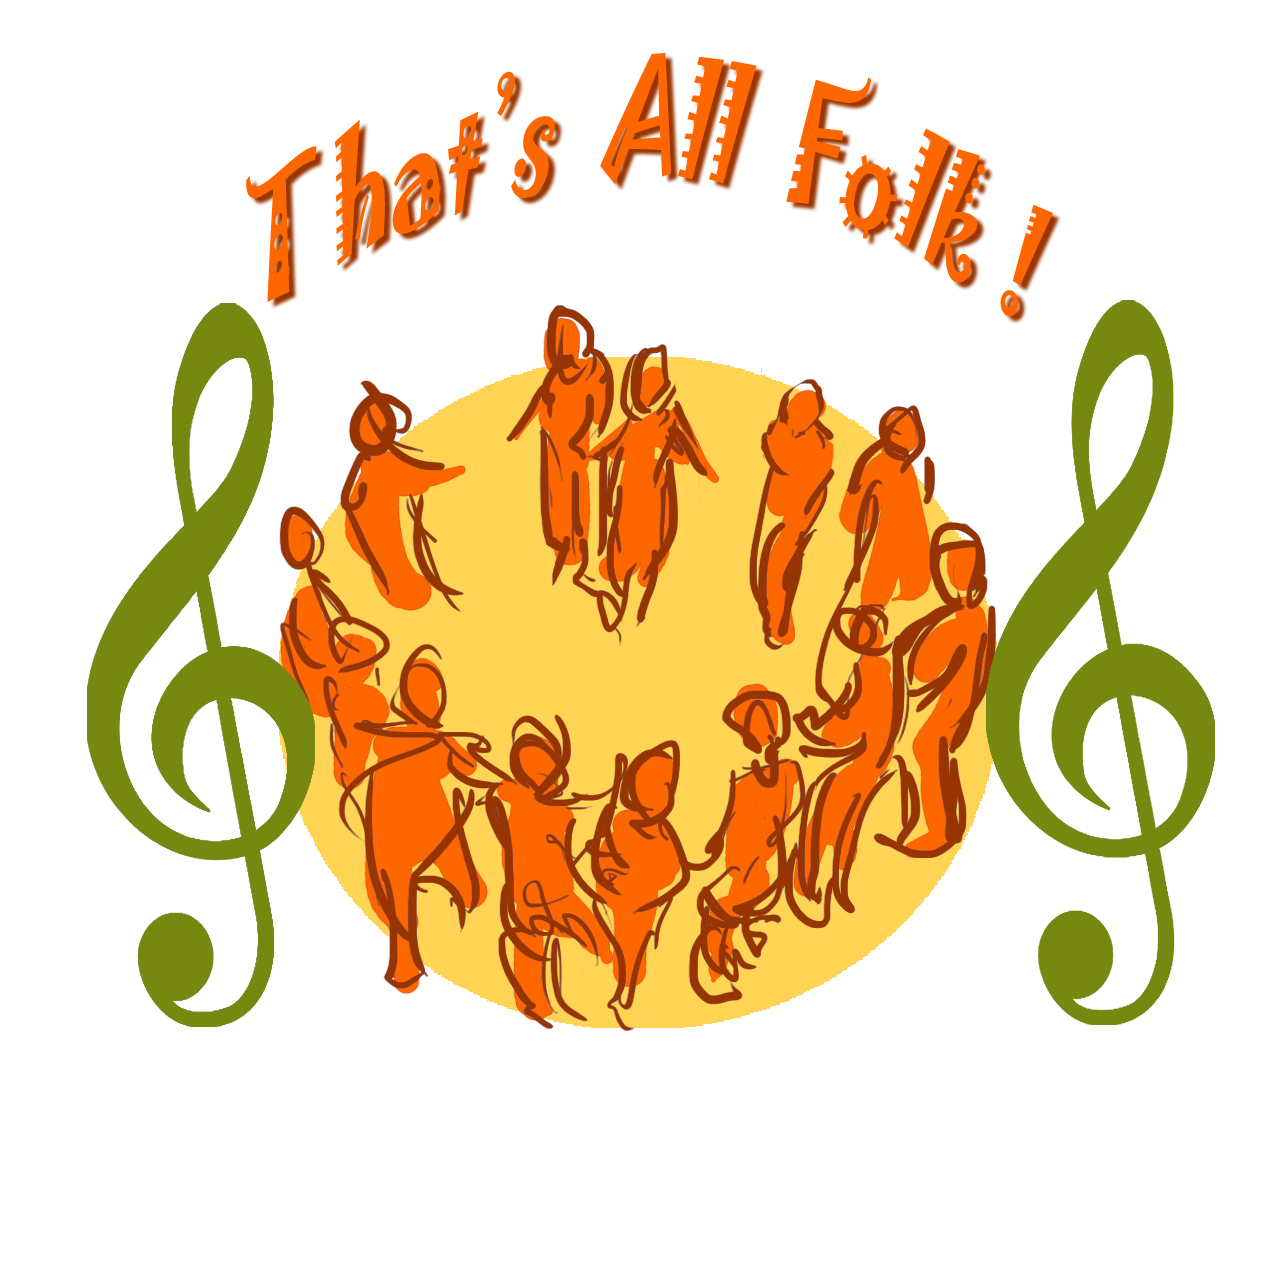 Logo de That's All Folk!